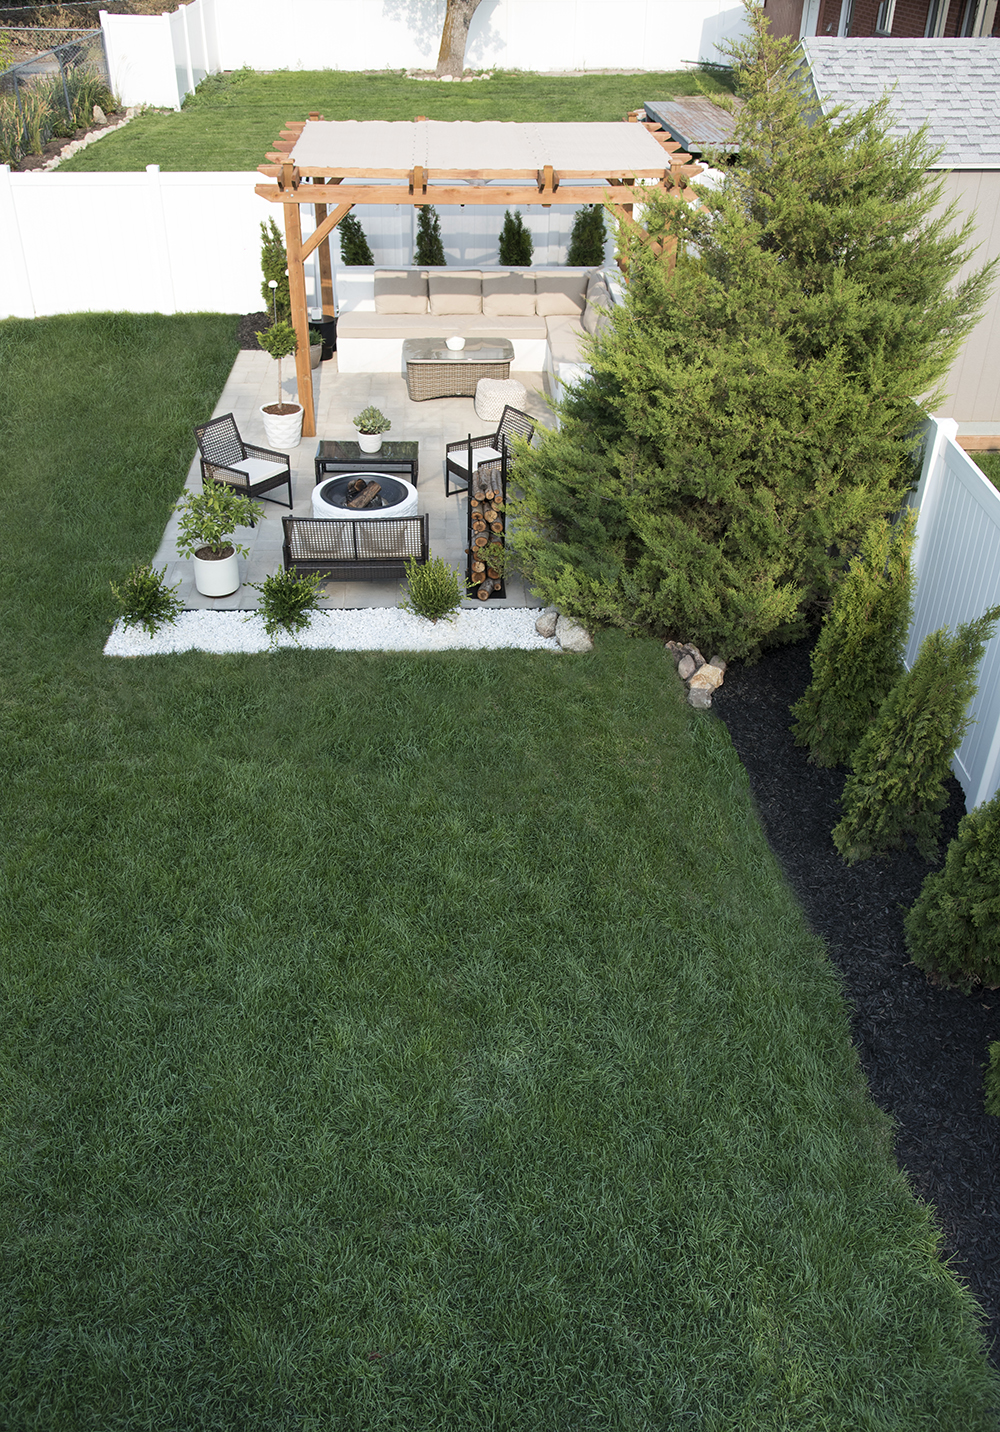 Landscaping from Above